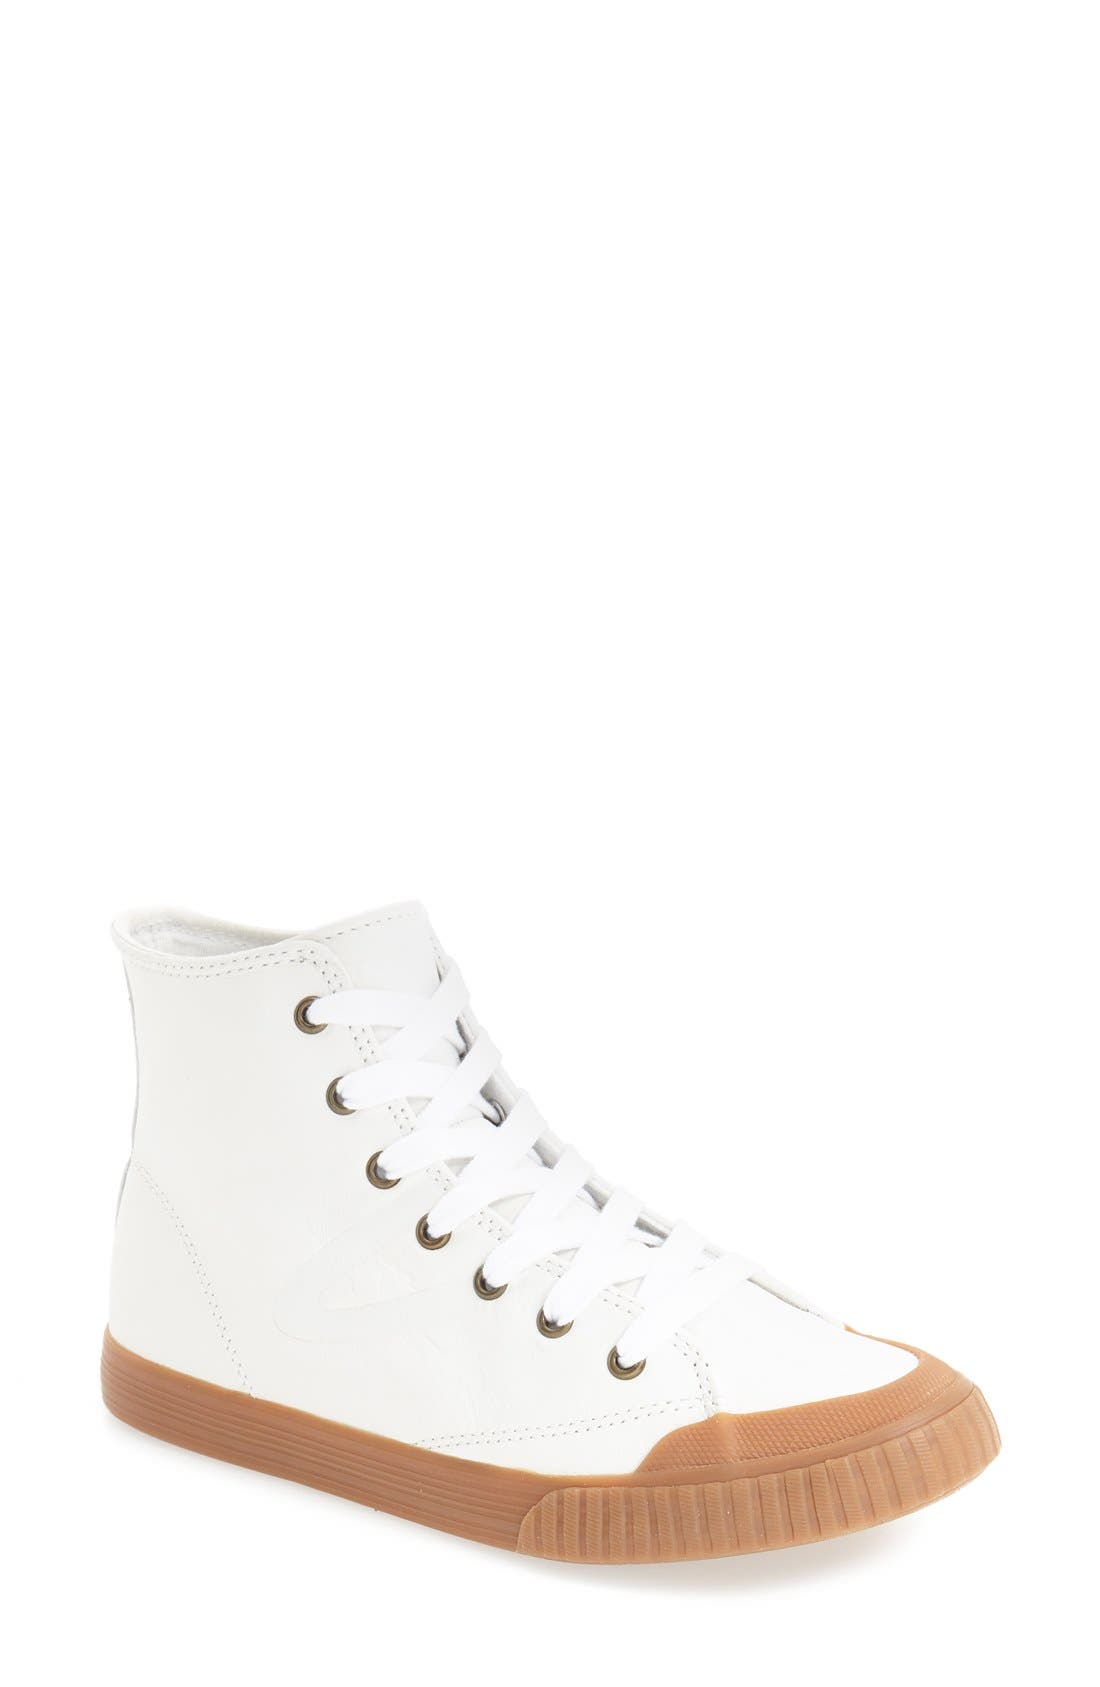 Marley 2 High Top Sneaker,                             Main thumbnail 1, color,                             White